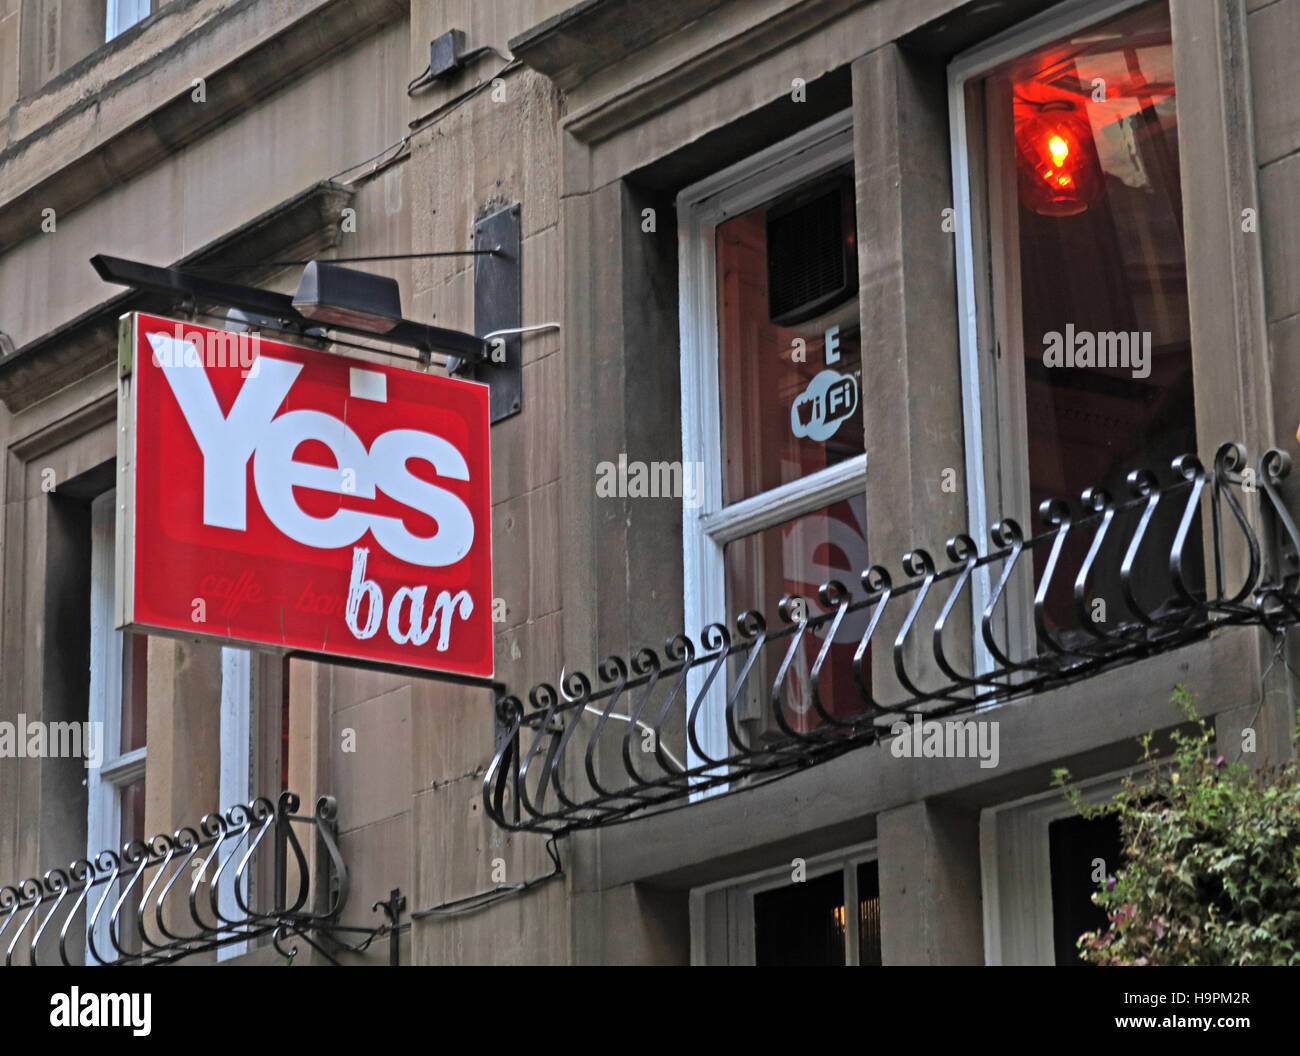 Yes,bars,pub,pubs,Bar,to a 2nd,second,freedom,second,SNP,National,Party,Nationalism,2,Scottish,SNP,independance party,independence,indyref,referendum,2nd,second,Brexit,Scottish Independence,Vote Yes,UK referendum,Nicola Sturgeon,Yes vote,No vote,Second Scottish Referendum,G2 5AE,GoTonySmith,@HotpixUK,Tony,Smith,UK,GB,Great,Britain,United,Kingdom,Scotish,Scottish,Scotch,British,Scotland,Alba,problem,with,problem with,issue with,#brexit,Buy Pictures of,Buy Images Of,Images of,Stock Images,Tony Smith,United Kingdom,Great Britain,British Isles,Scottish Nationalism